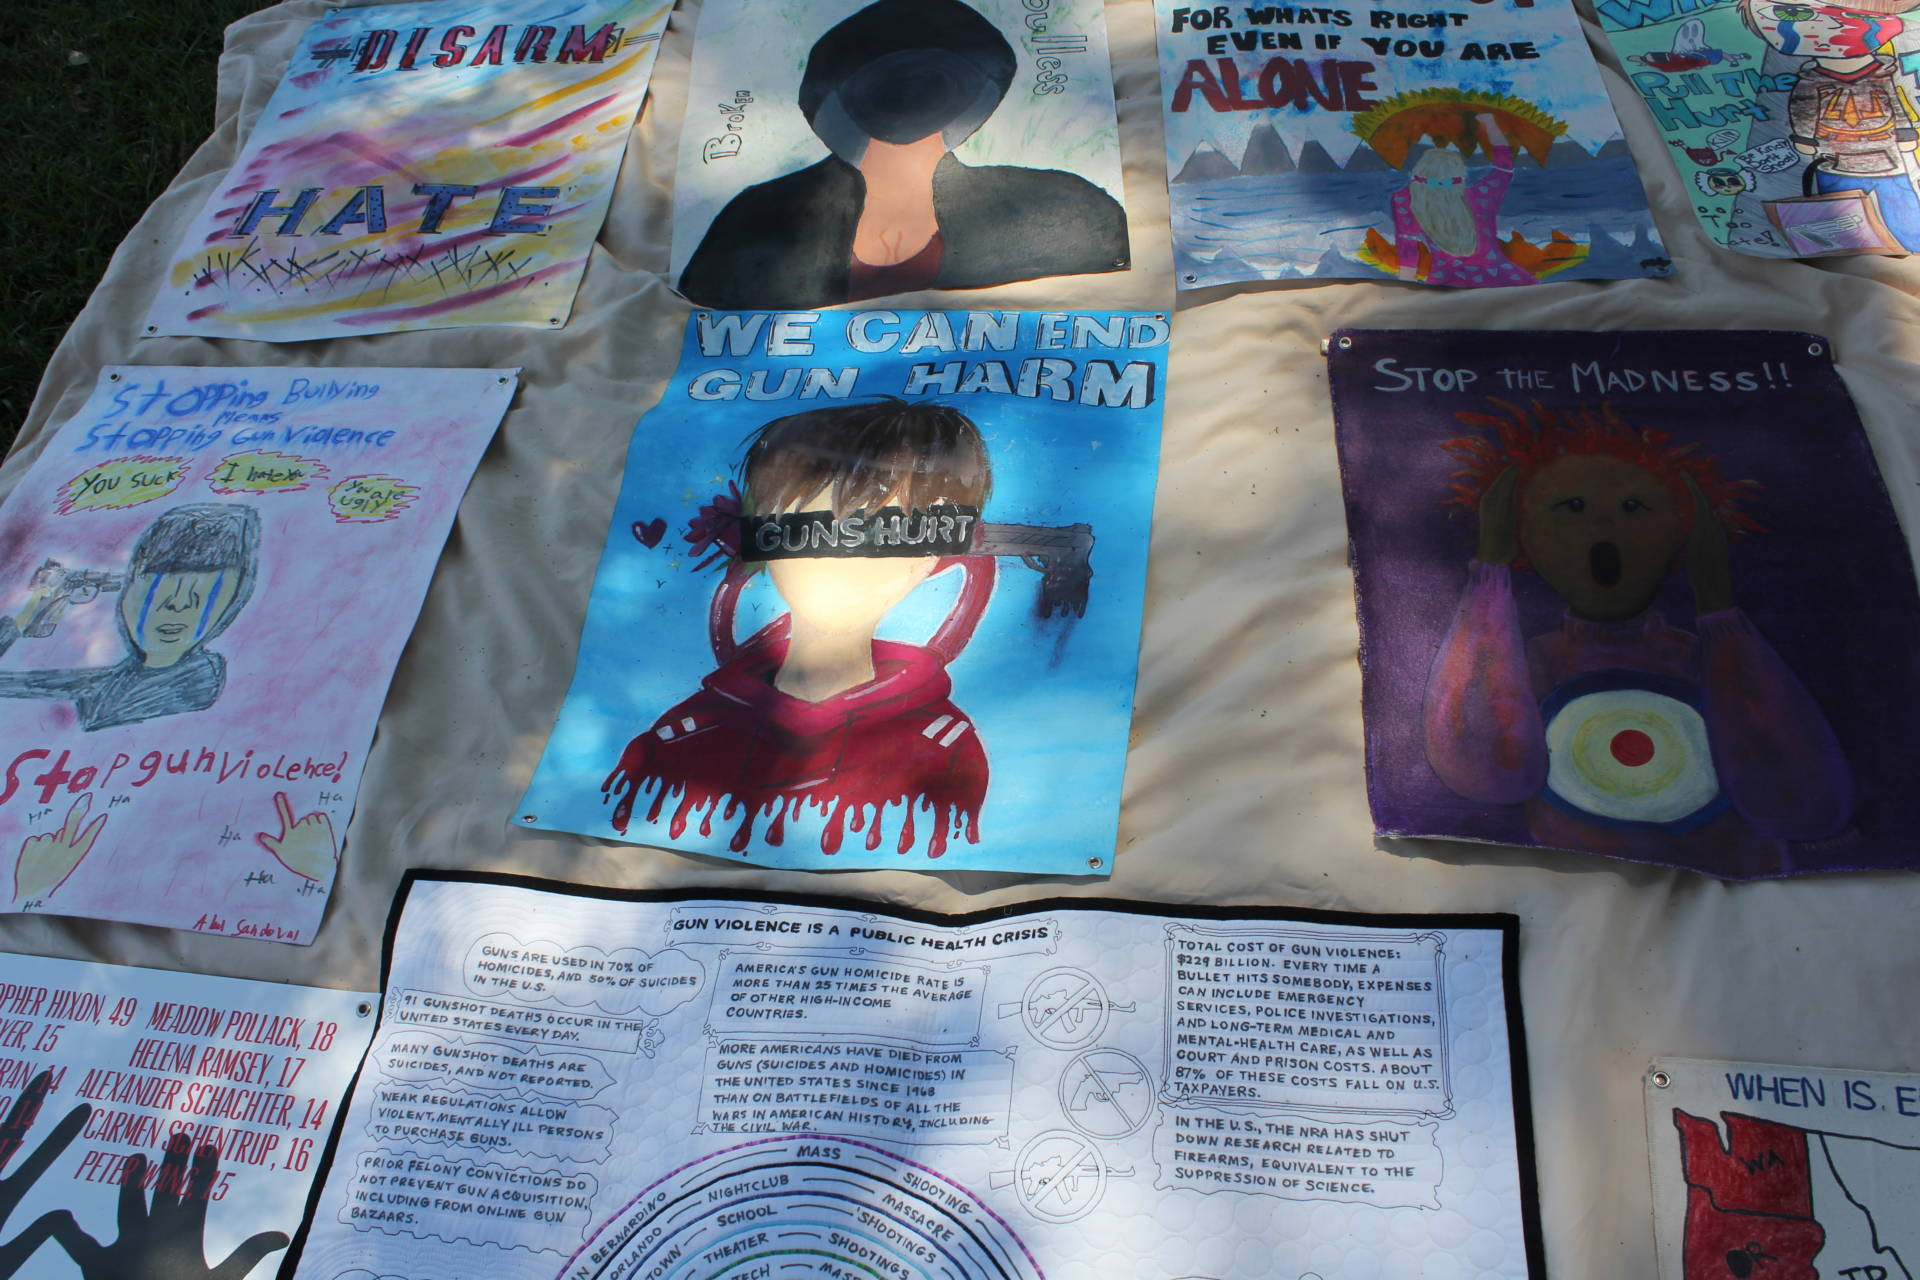 Artwork at the March for Our Lives Barbecue in Oakland, July 22, 2018. Sara Hossaini/KQED